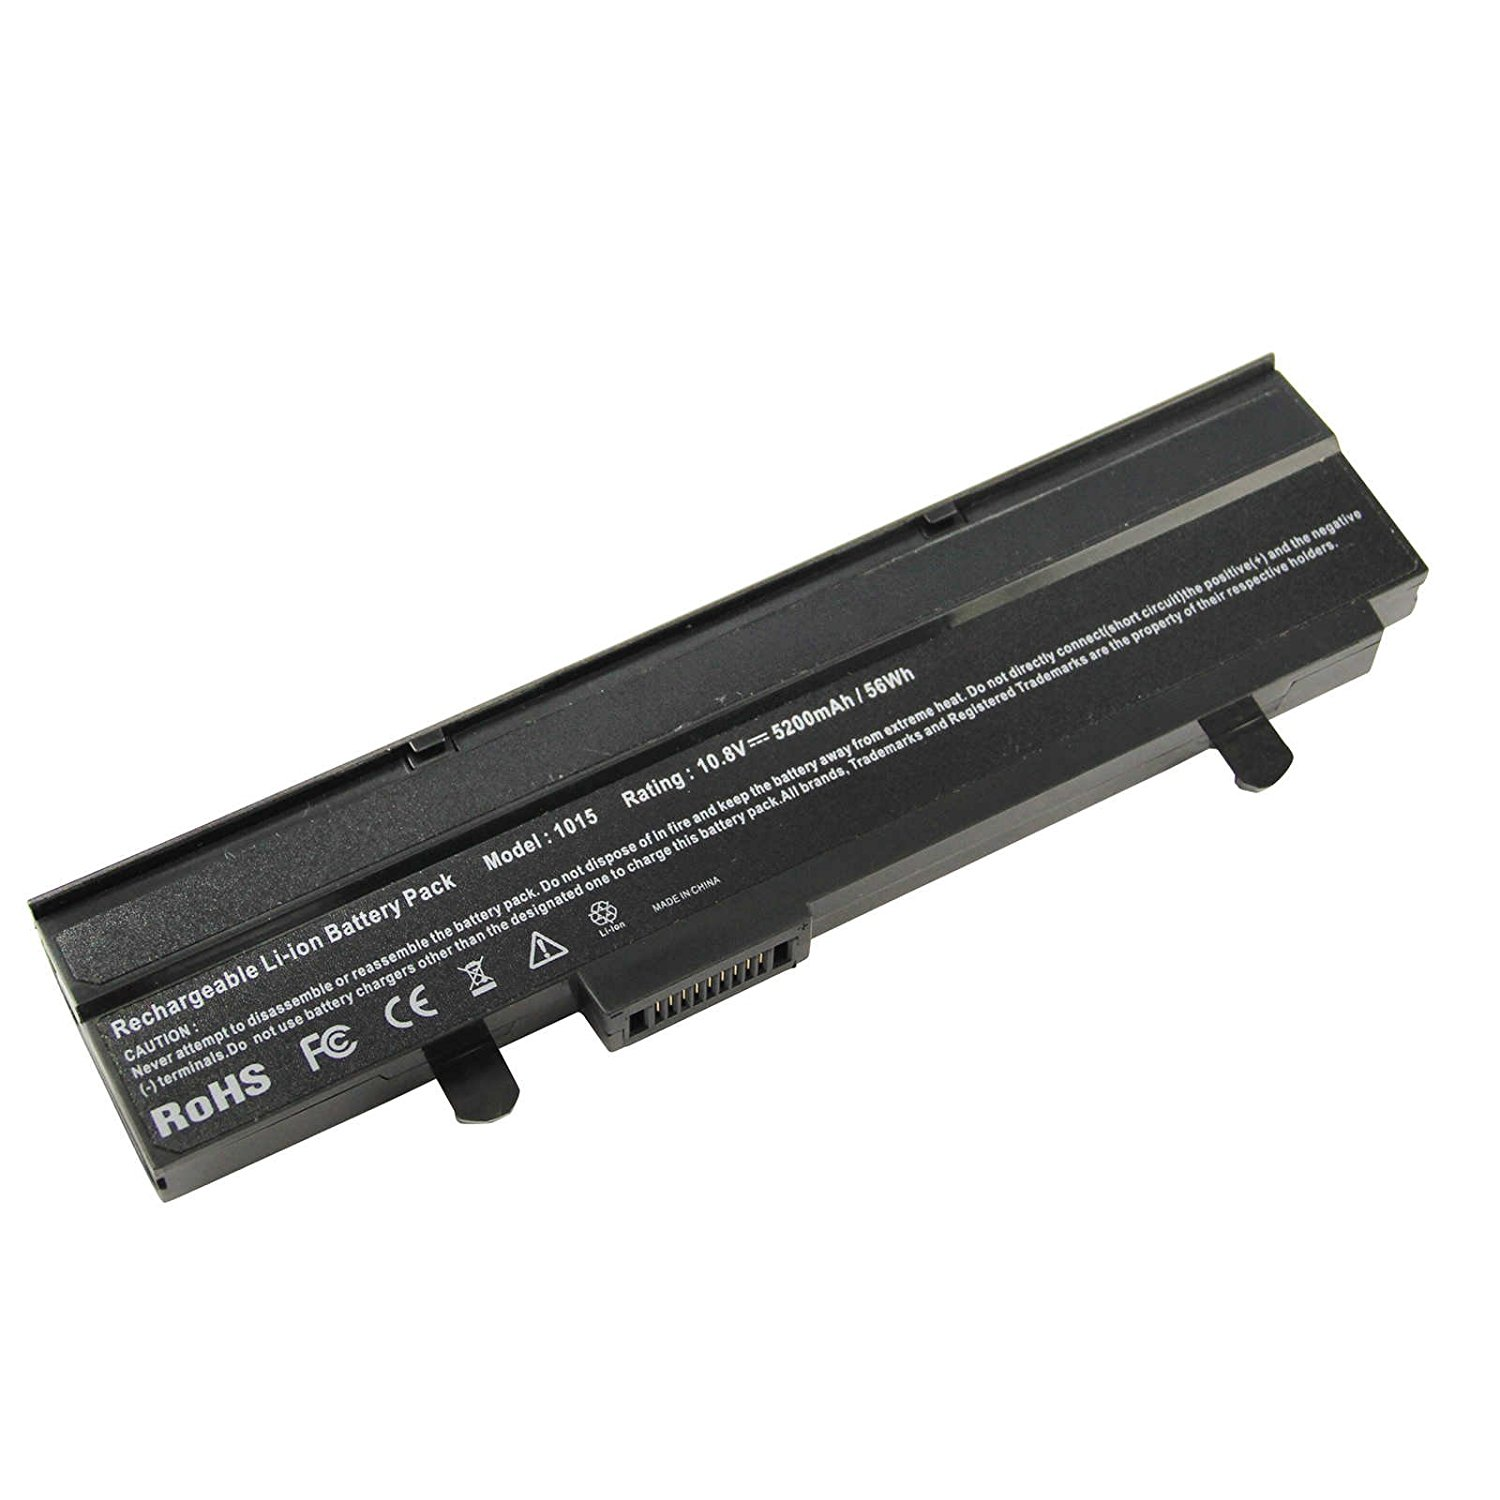 AC Doctor INC Generic OEM 10.8V 5200mAh Black Laptop Battery Replacement for Asus Eee PC 1015 Series A32-1015 A31-1015 New 6-Cell